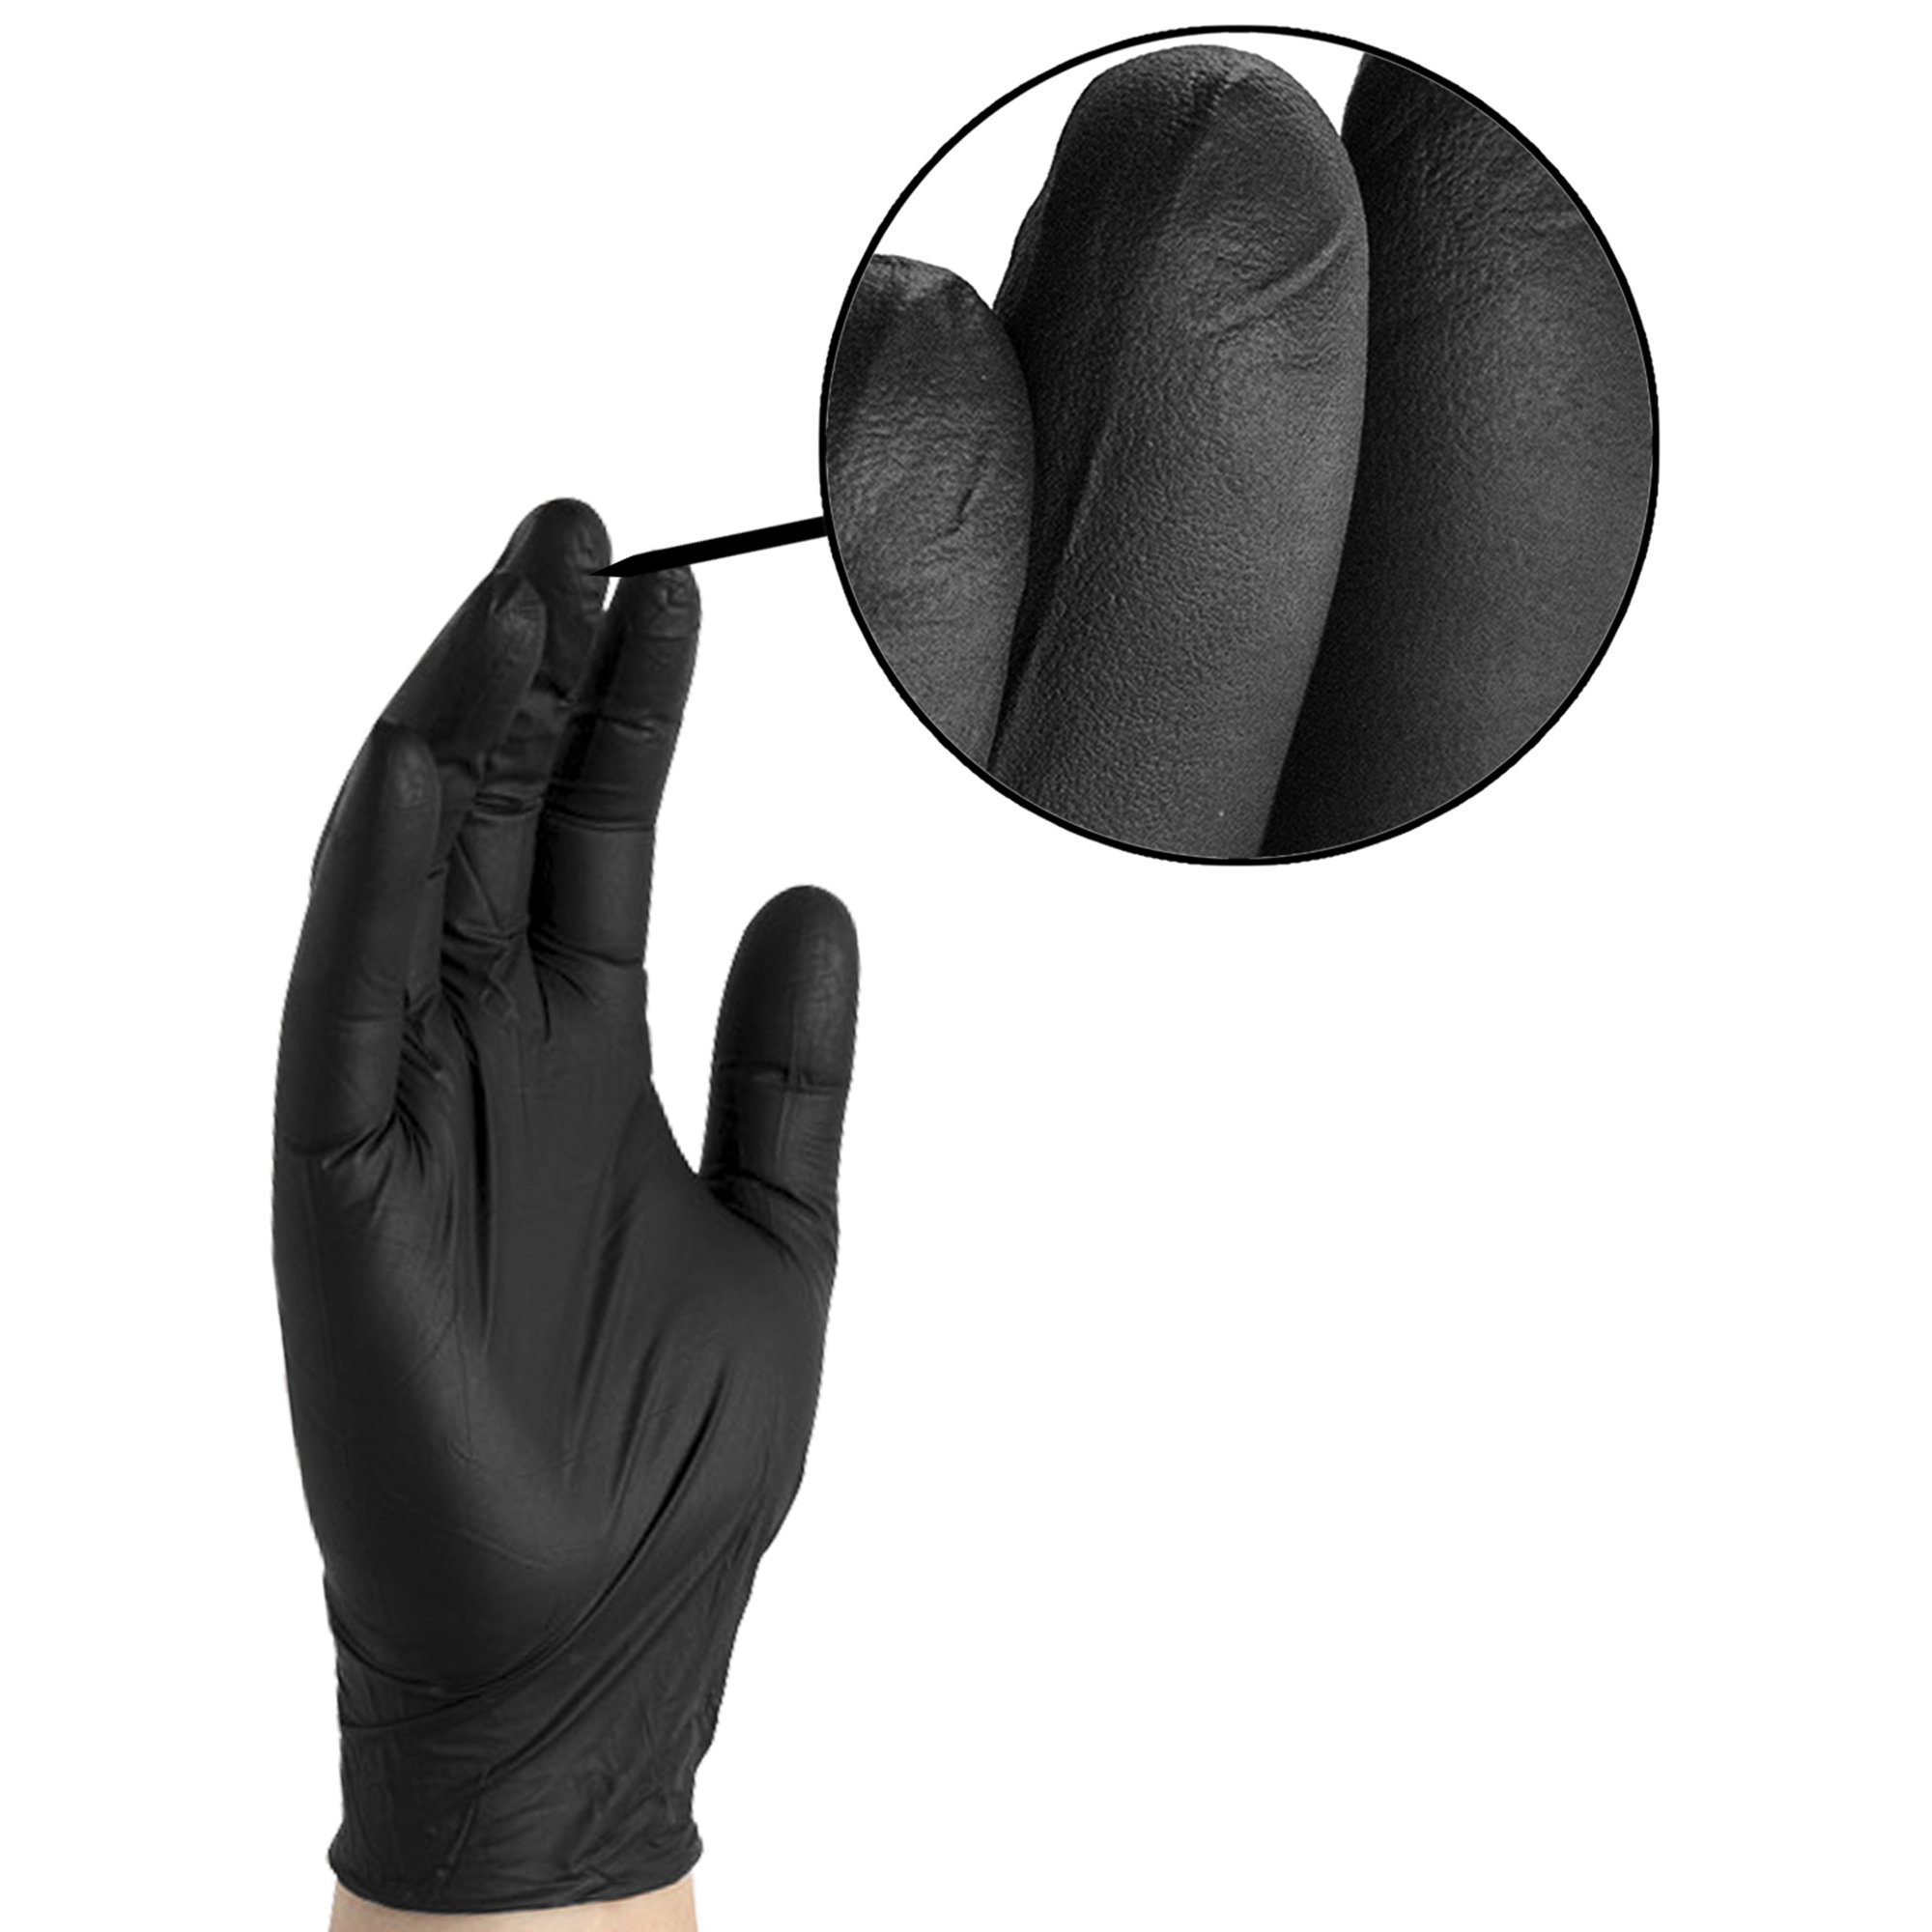 AMMEX - BINPF46100 - Industrial Nitrile Gloves - Gloveworks - Disposable, Powder Free, 5 mil, Large, Black (Case of 1000) by Ammex (Image #4)